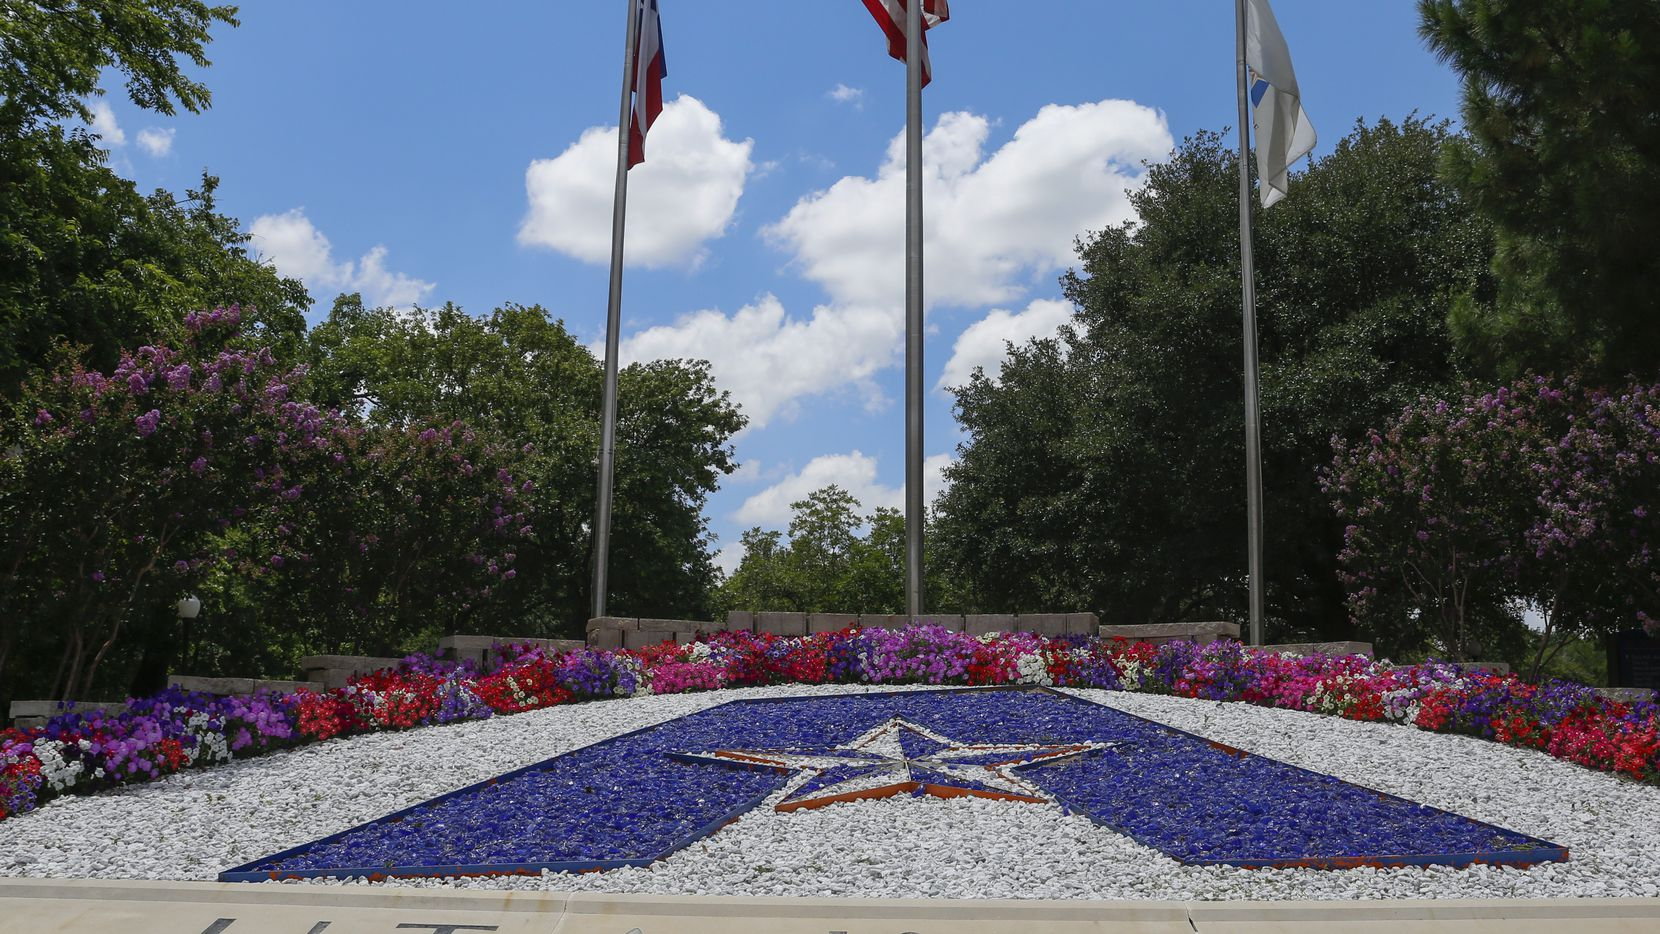 The University of Texas at Arlington has worked for more than a decade to achieve a prestigious state research designation that only three other schools in Texas boast, including the University of Texas at Dallas, the University of Houston and Texas Tech University.